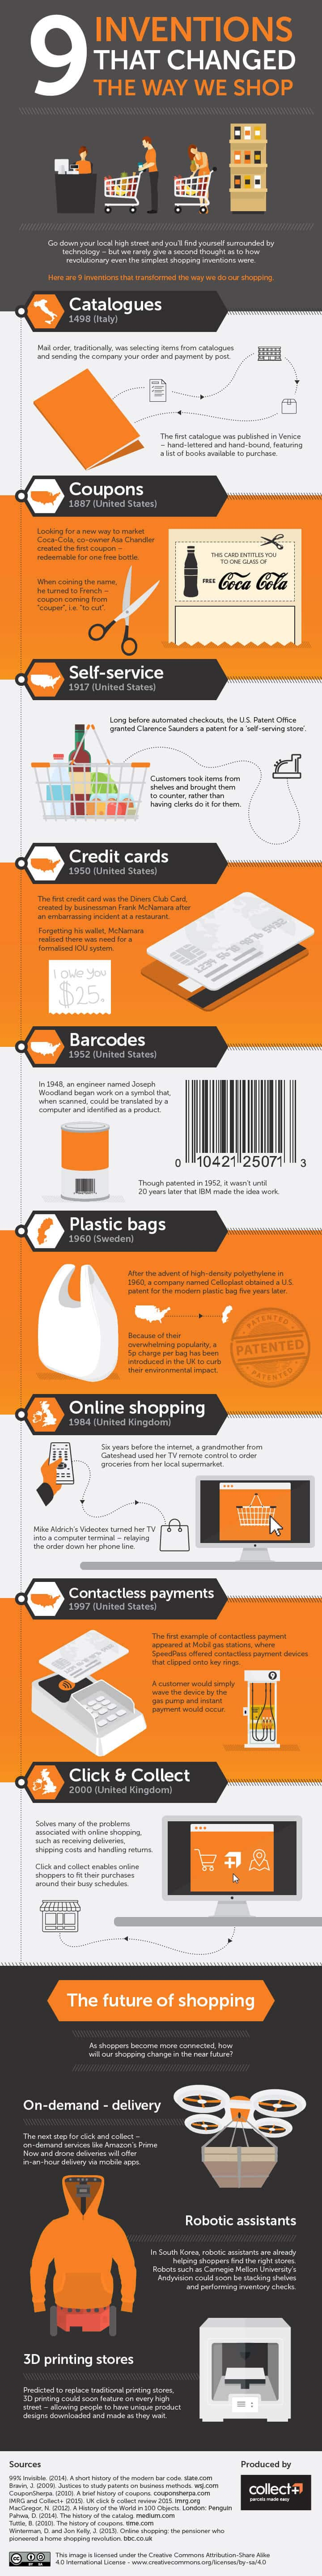 9 Brilliant Inventions That Changed the Way You shop [Infographic]